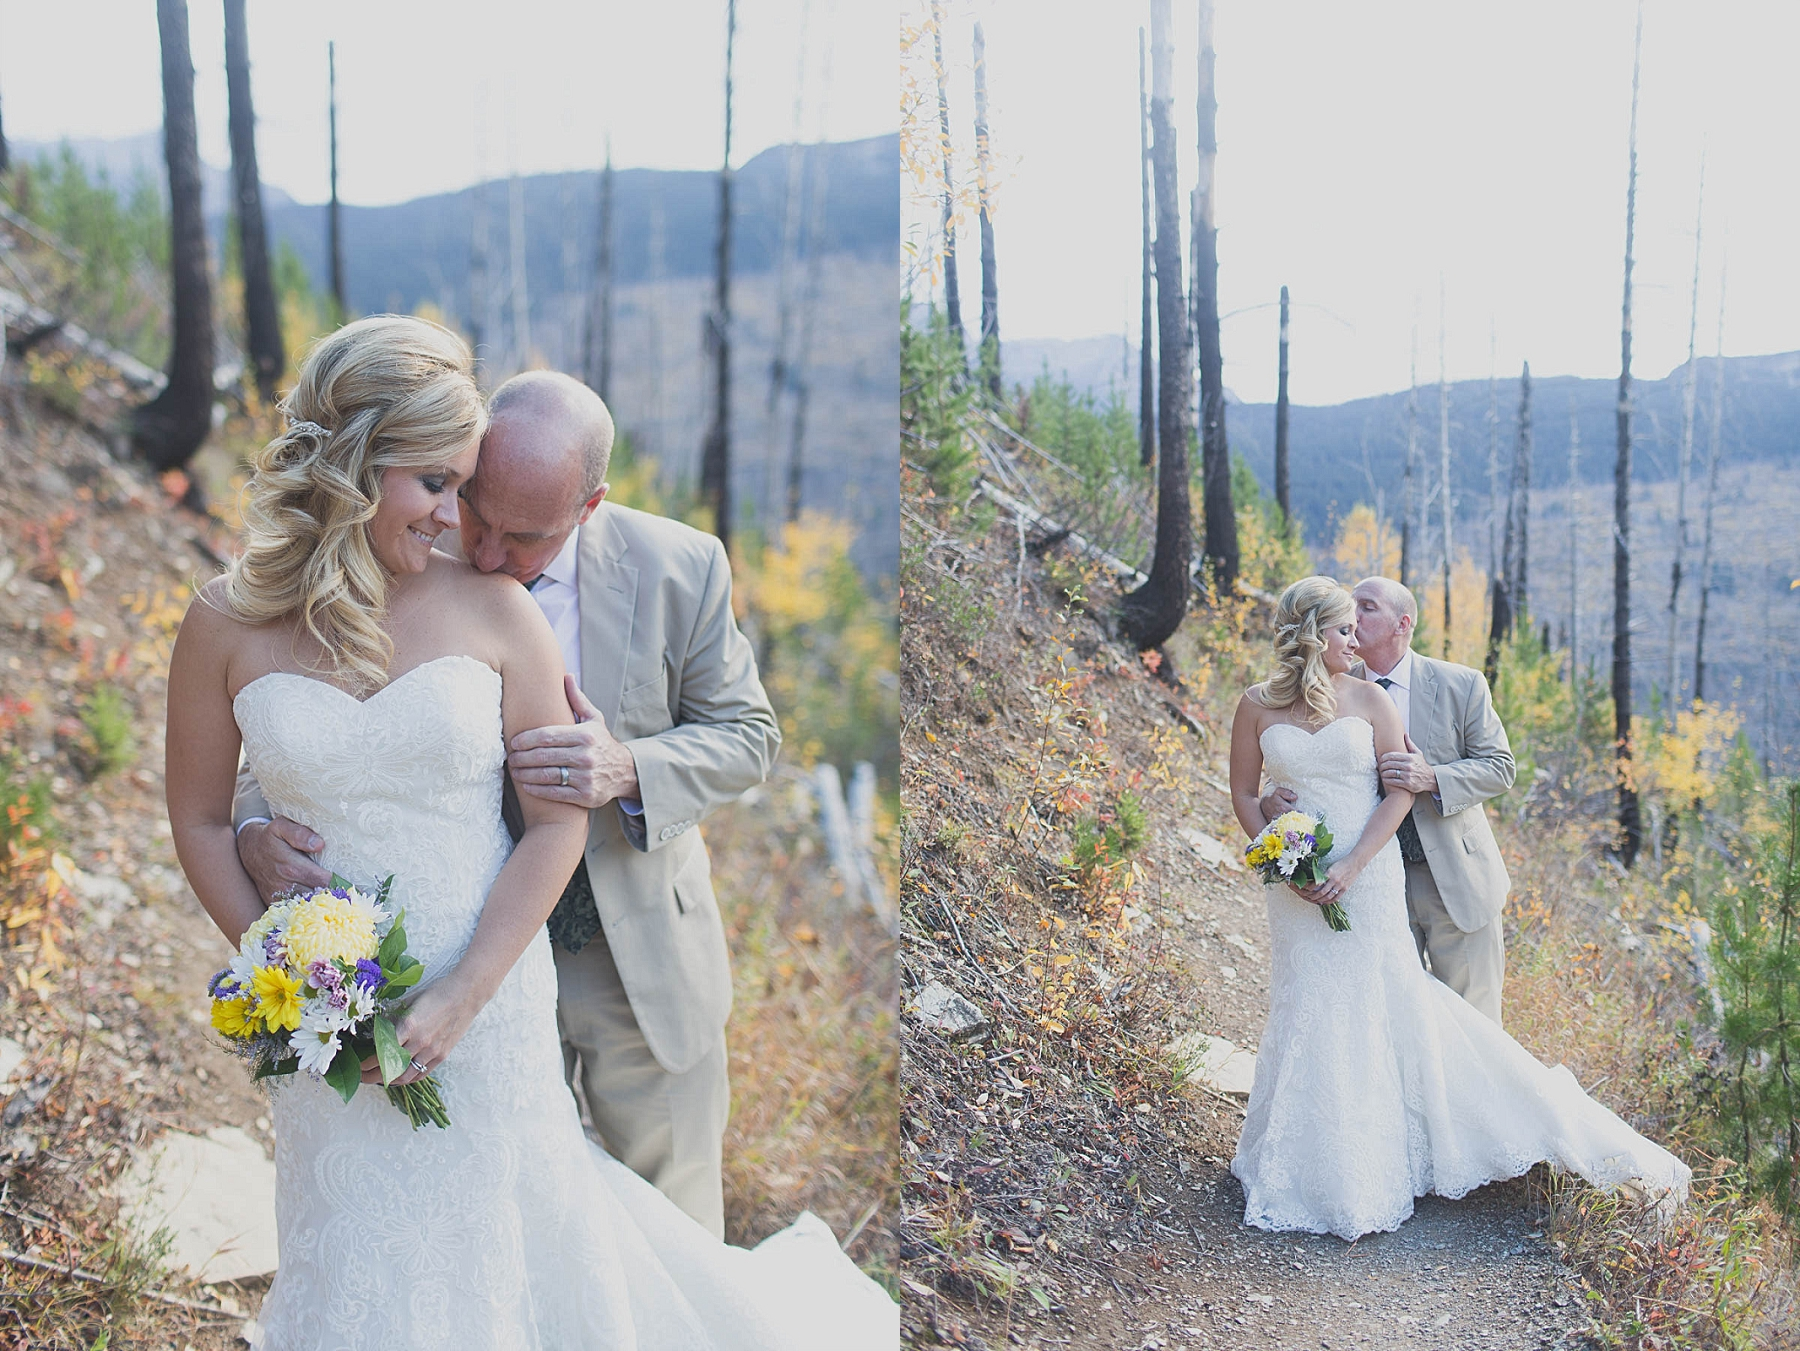 Jennifer_Mooney_photo_day_after_session_glacier_park_elegant_wedding_bride_groom_destination_-22.jpg